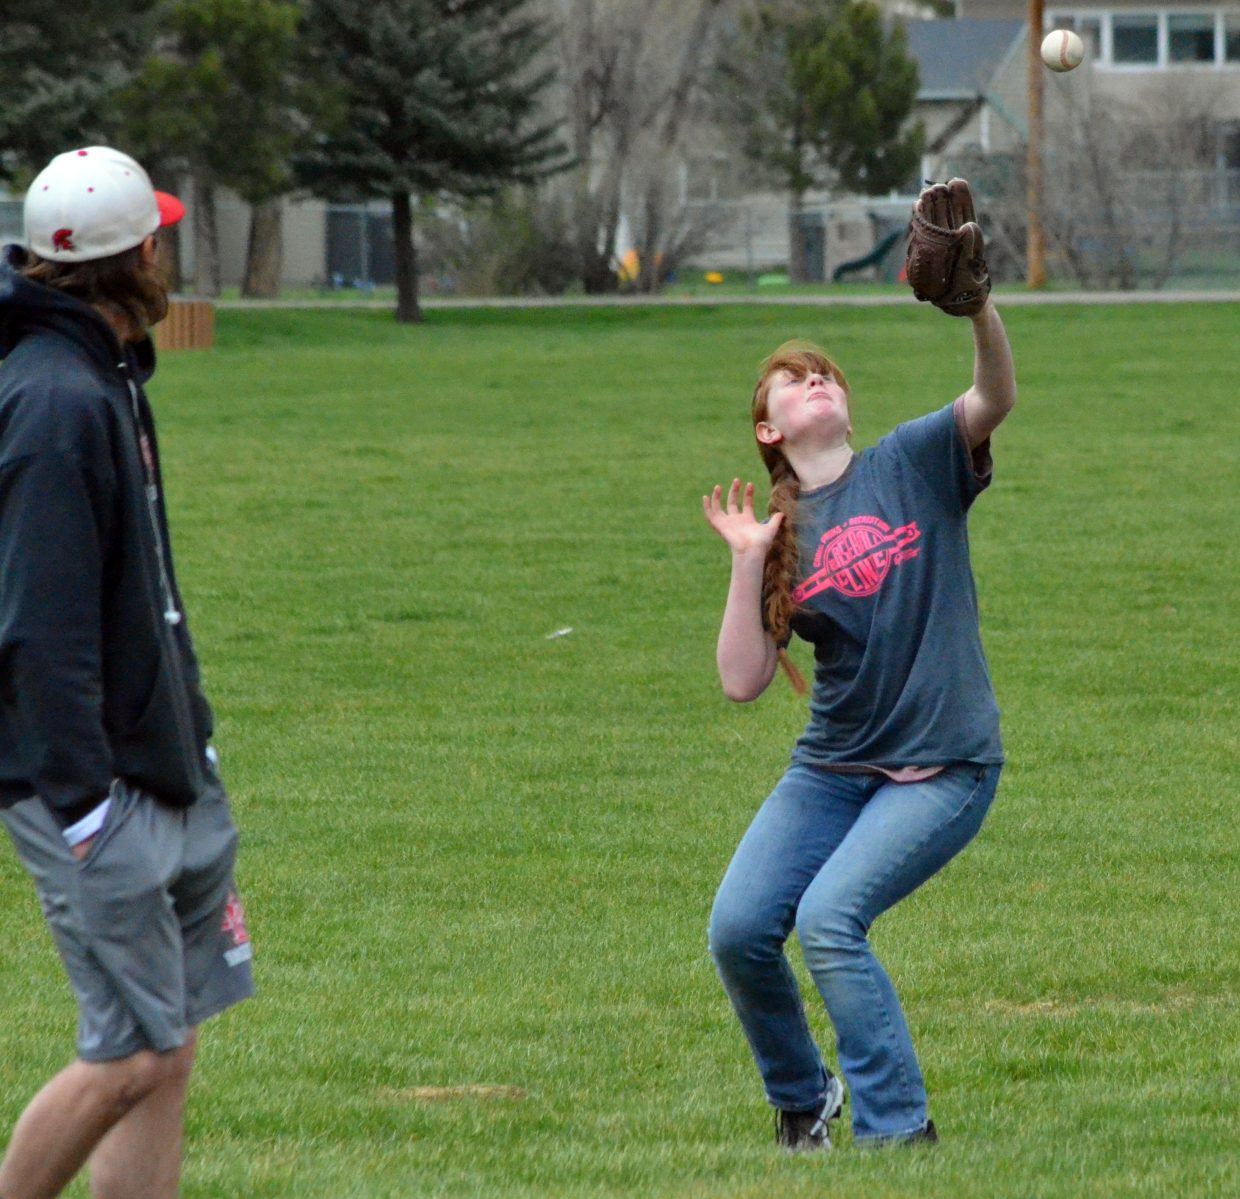 Dylan Herndon gets her mitt ready for a fly ball during the Spartan Baseball Clinic